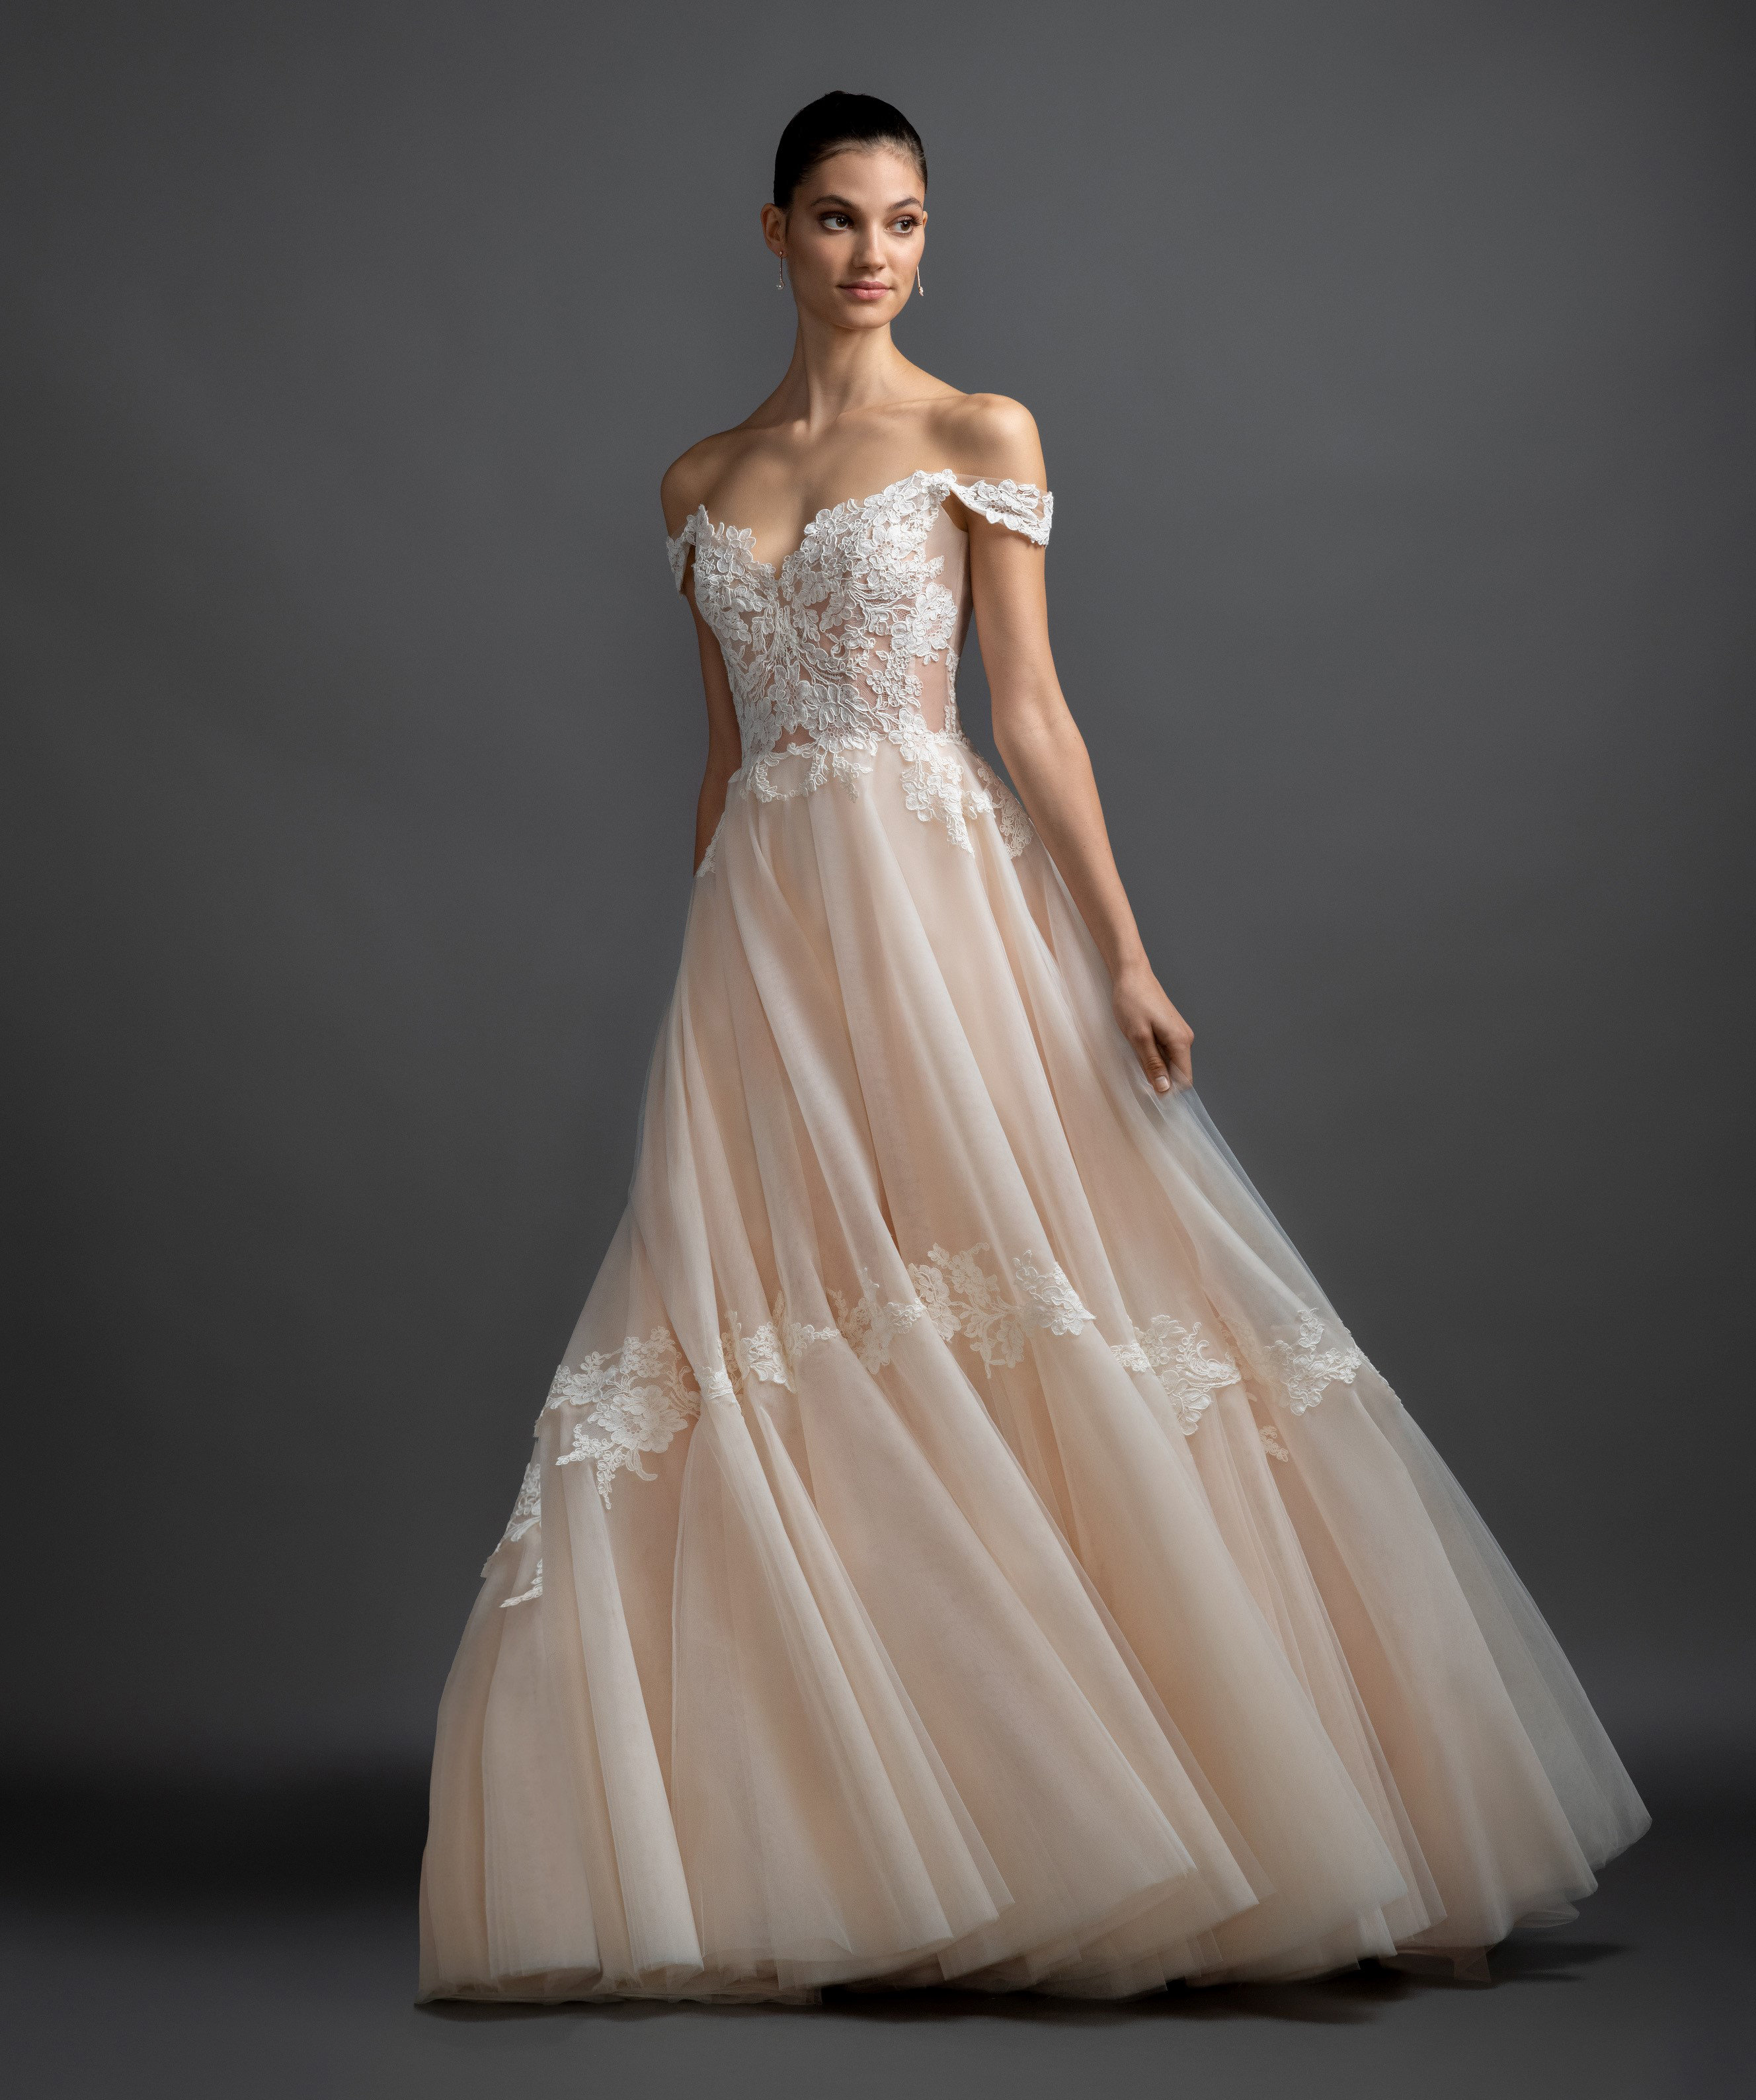 Bridal Gowns And Wedding Dresses By Jlm Couture Style 3916 Jade